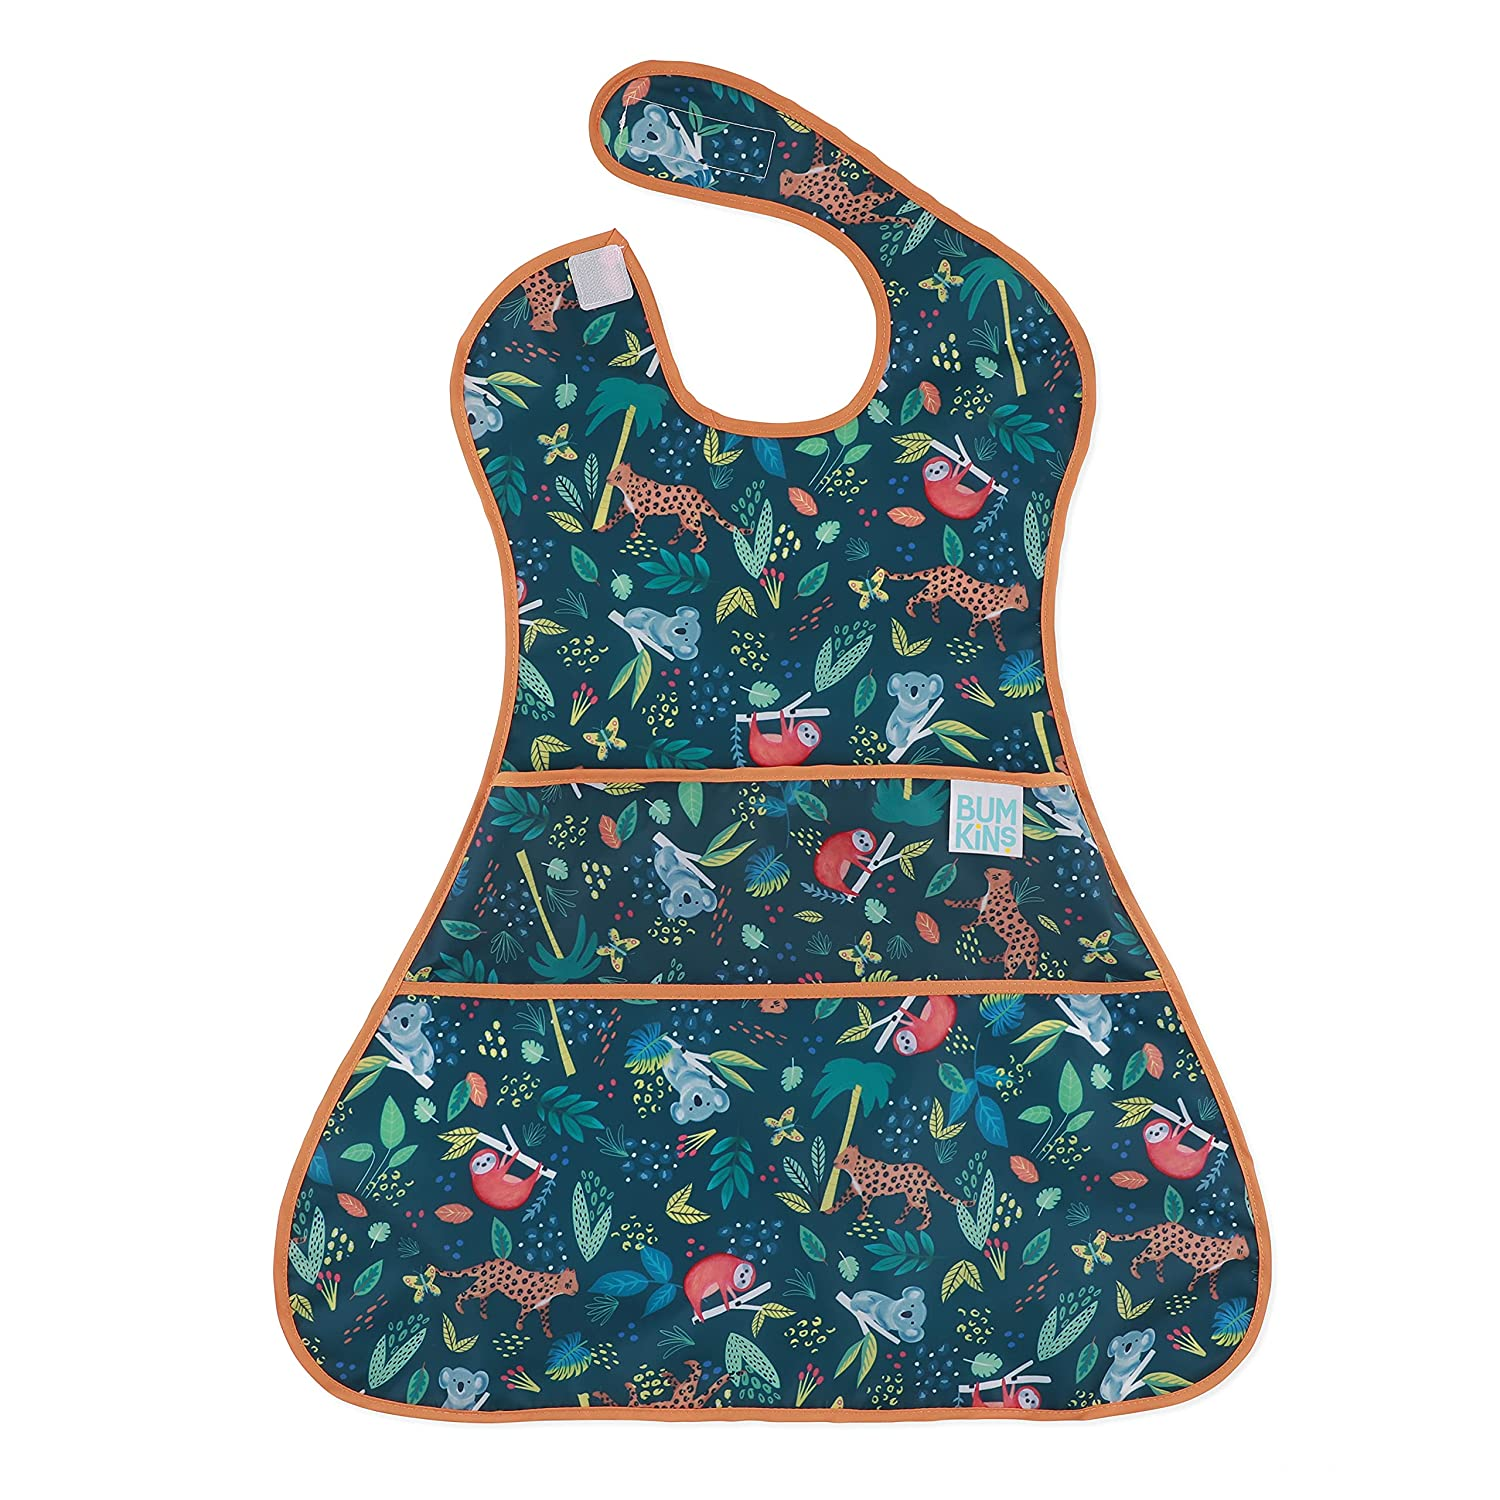 Bumkins SuperBib, Supersized Oversized Baby Bib, Waterproof Fabric, Fits Babies and Toddlers 6-24 Months – Jungle